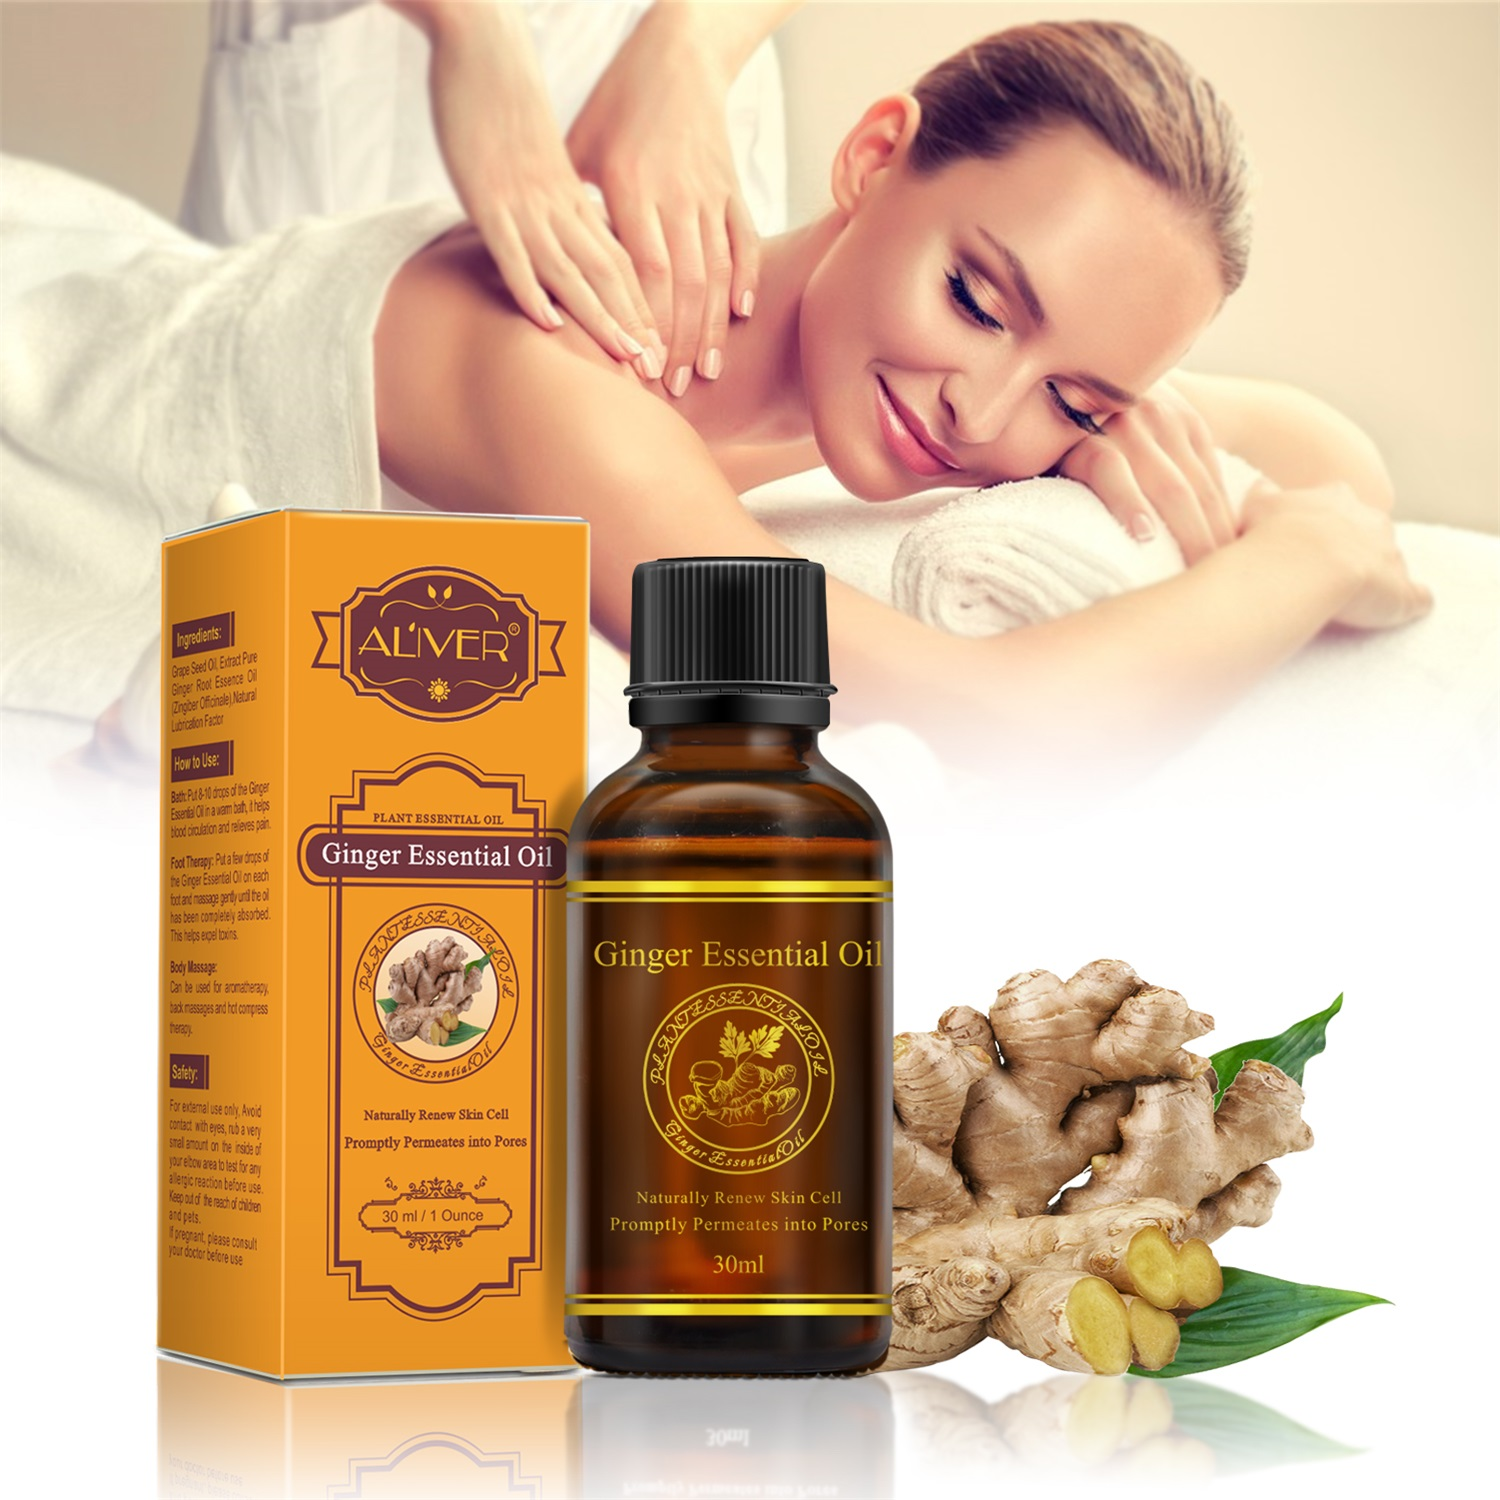 2/1Pcs Ginger Essential Oils Body Spa Massage Oil Relief Stress Relax Body Elimination of Fat Ginger Oil 30ml TSLM2